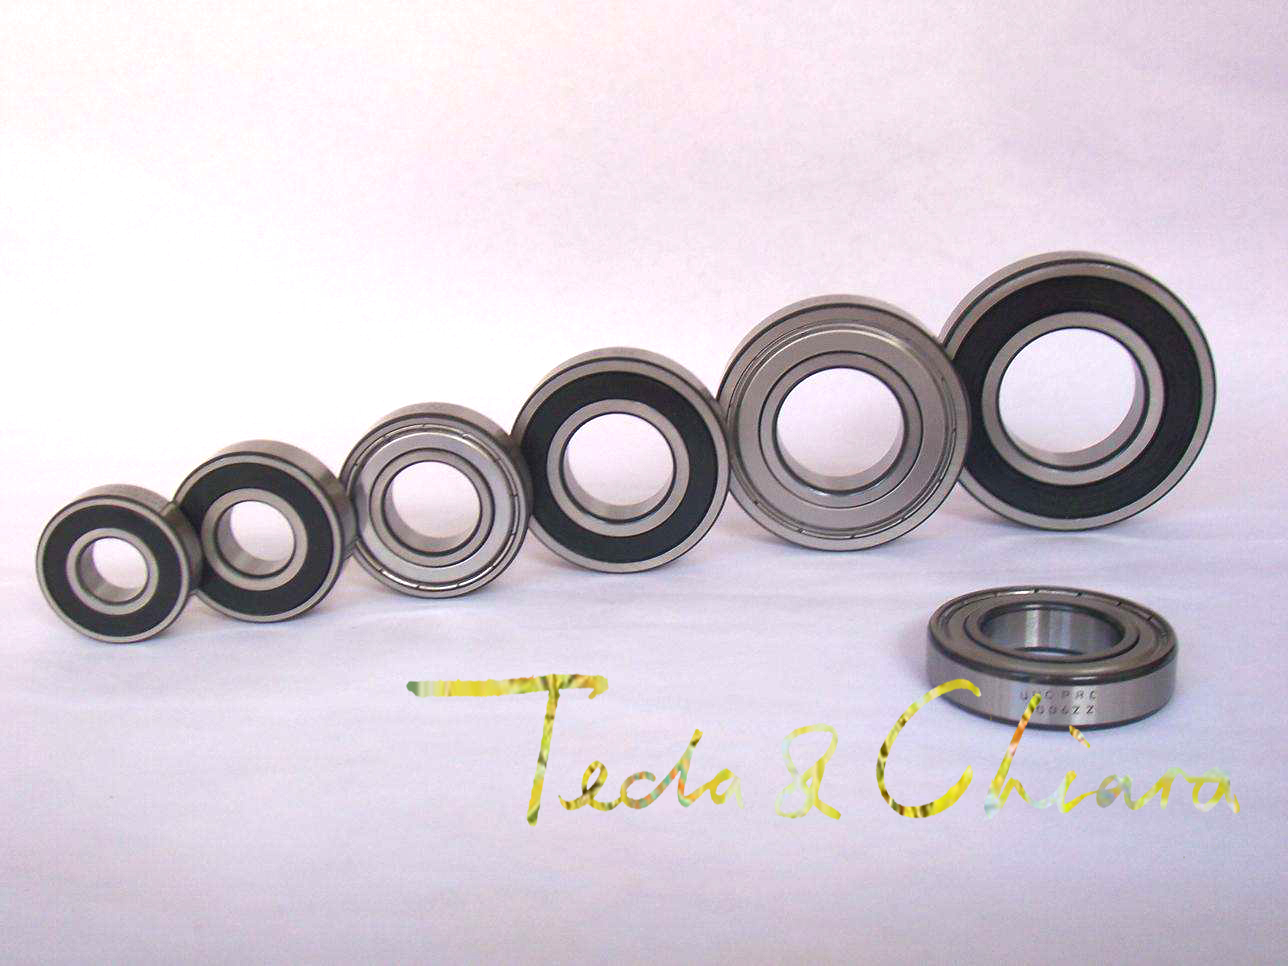 607 607ZZ 607RS 607-2Z 607Z 607-2RS ZZ RS RZ 2RZ Deep Groove Ball Bearings 7 x 19 x 6mm High Quality 607 2rs 607rs 607 deep groove ball bearing 7x19x6mm miniature bearing abec3